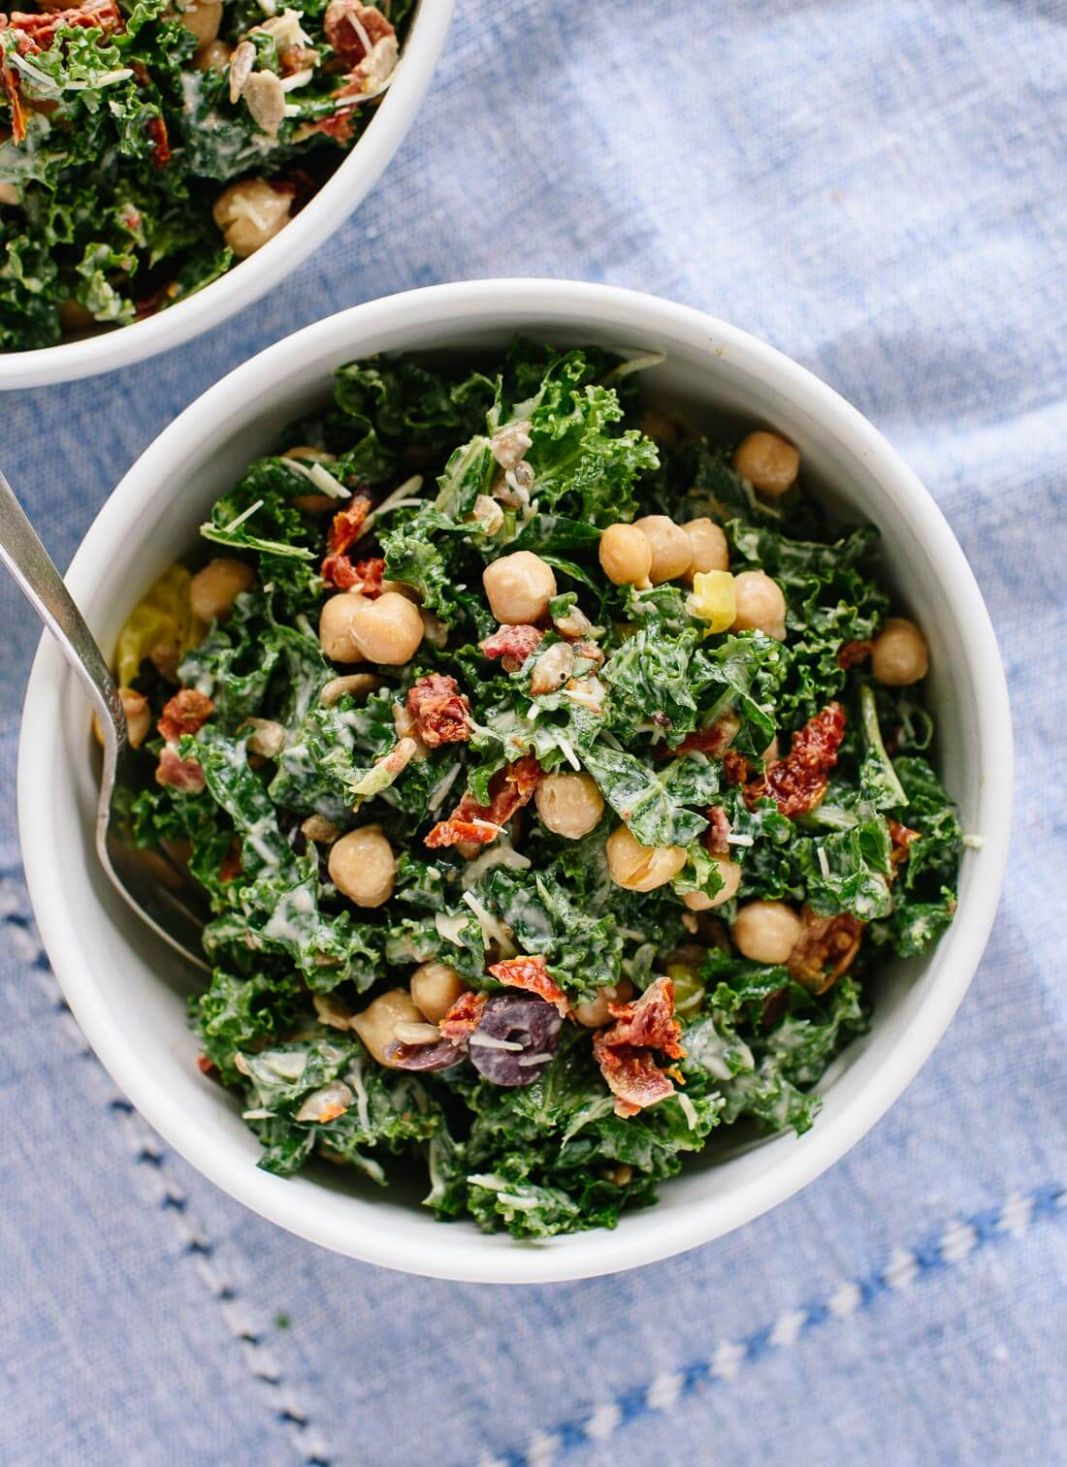 8 Favorite Kale Salads (plus tips!) - Cookie and Kate - All Recipes Summer Kale Salad